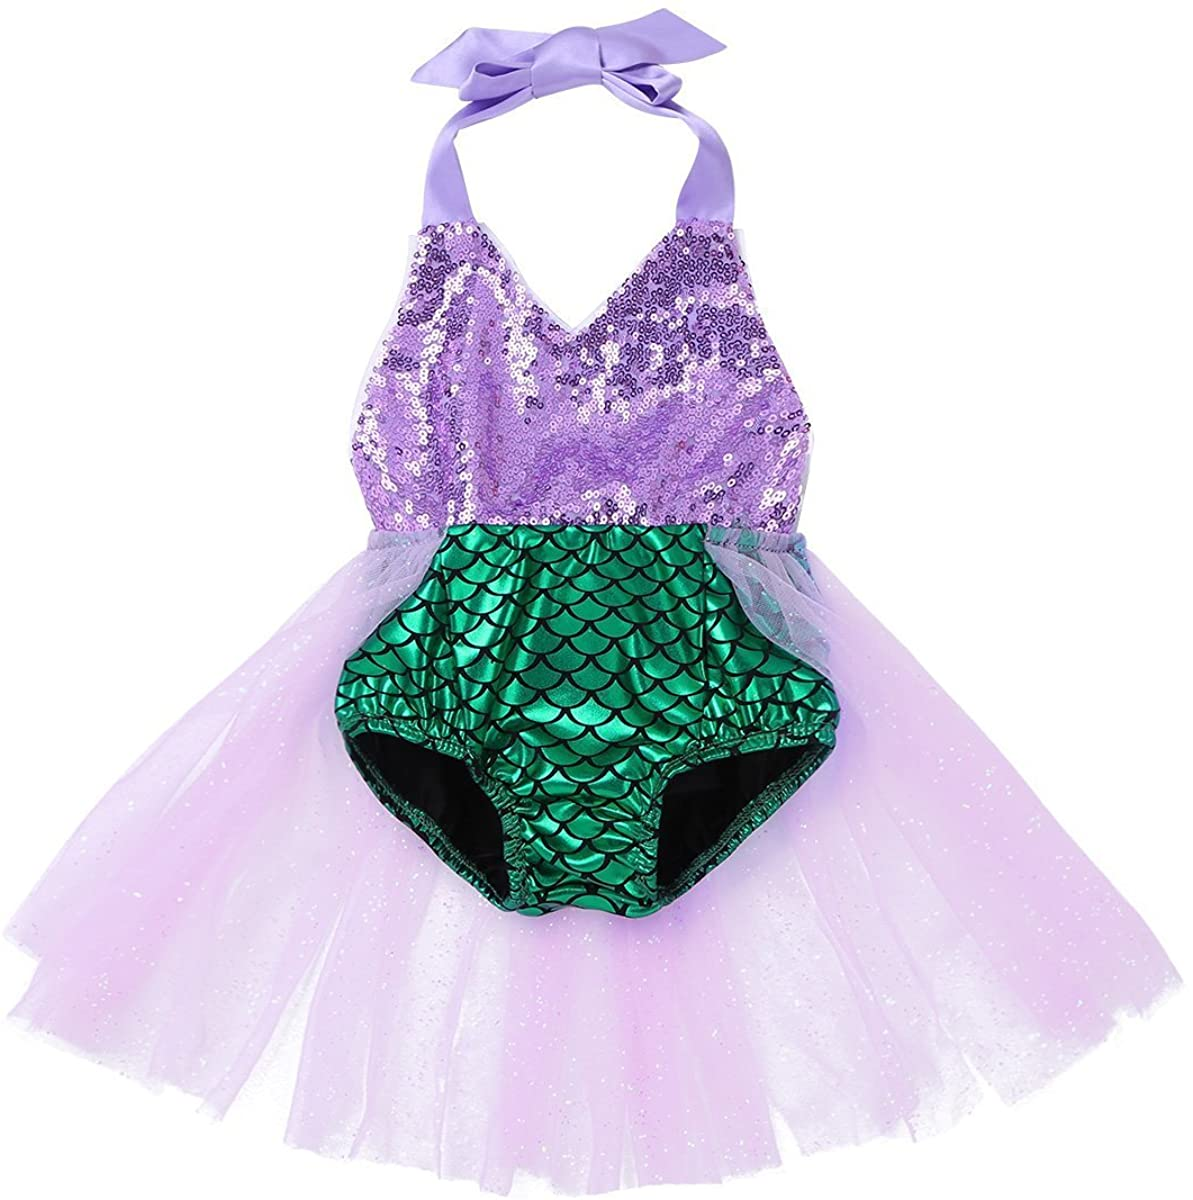 iEFiEL Baby Girls Sequins Mermaid Bodysuit Romper Summer Sunsuit Bathing Suit Outfits with Tulle Skirt